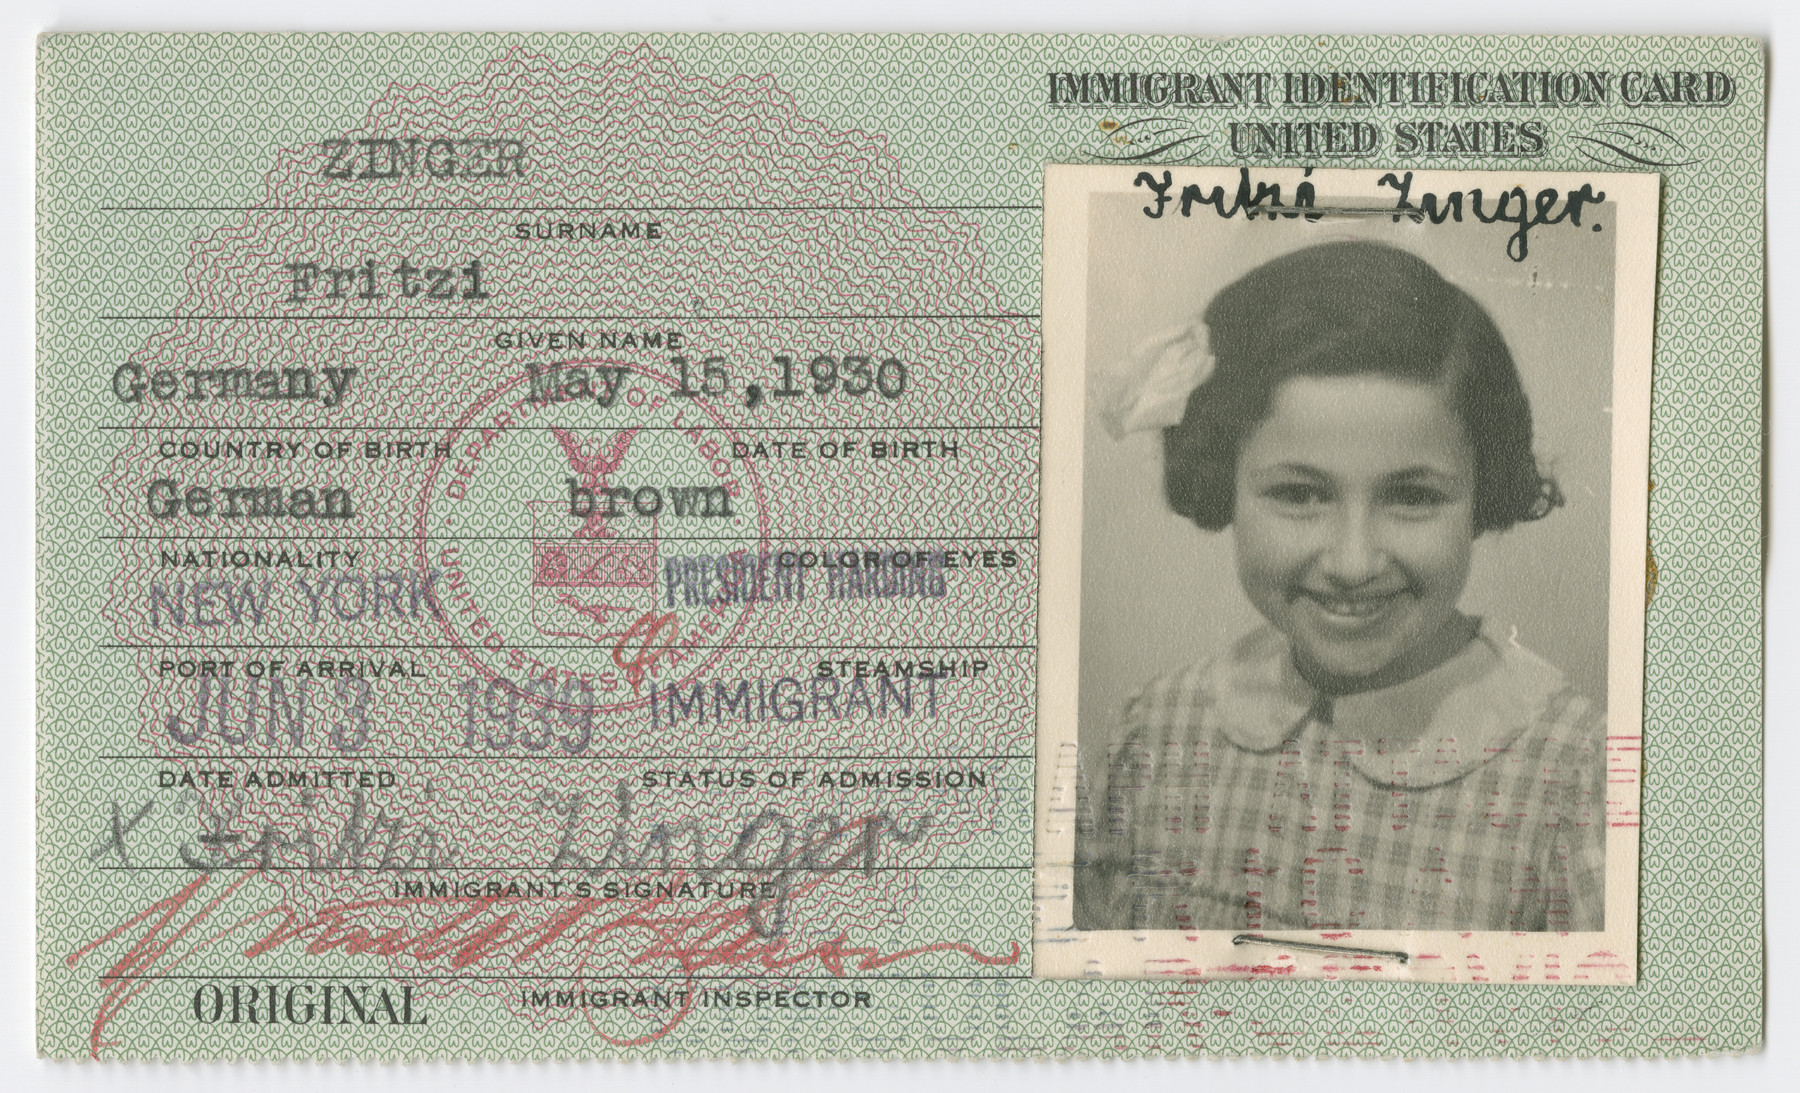 United States Immigrant Identification Card issued to Fritzi Zinger.  It states she was born in Germany though she was born in Vienna.